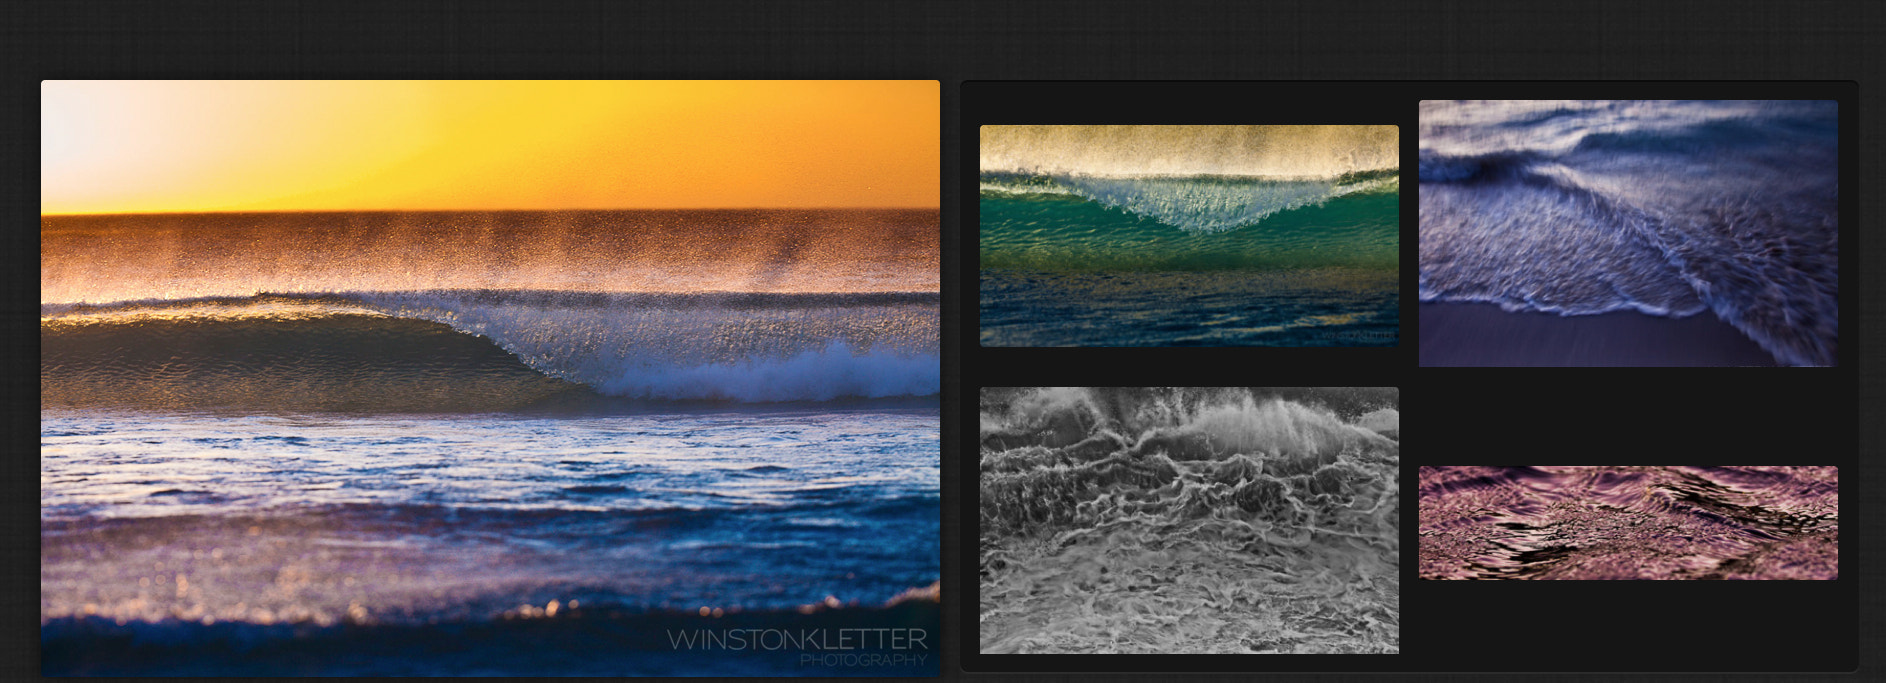 Photograph Massive Waves vs Micro waves by Winston Kletter on 500px